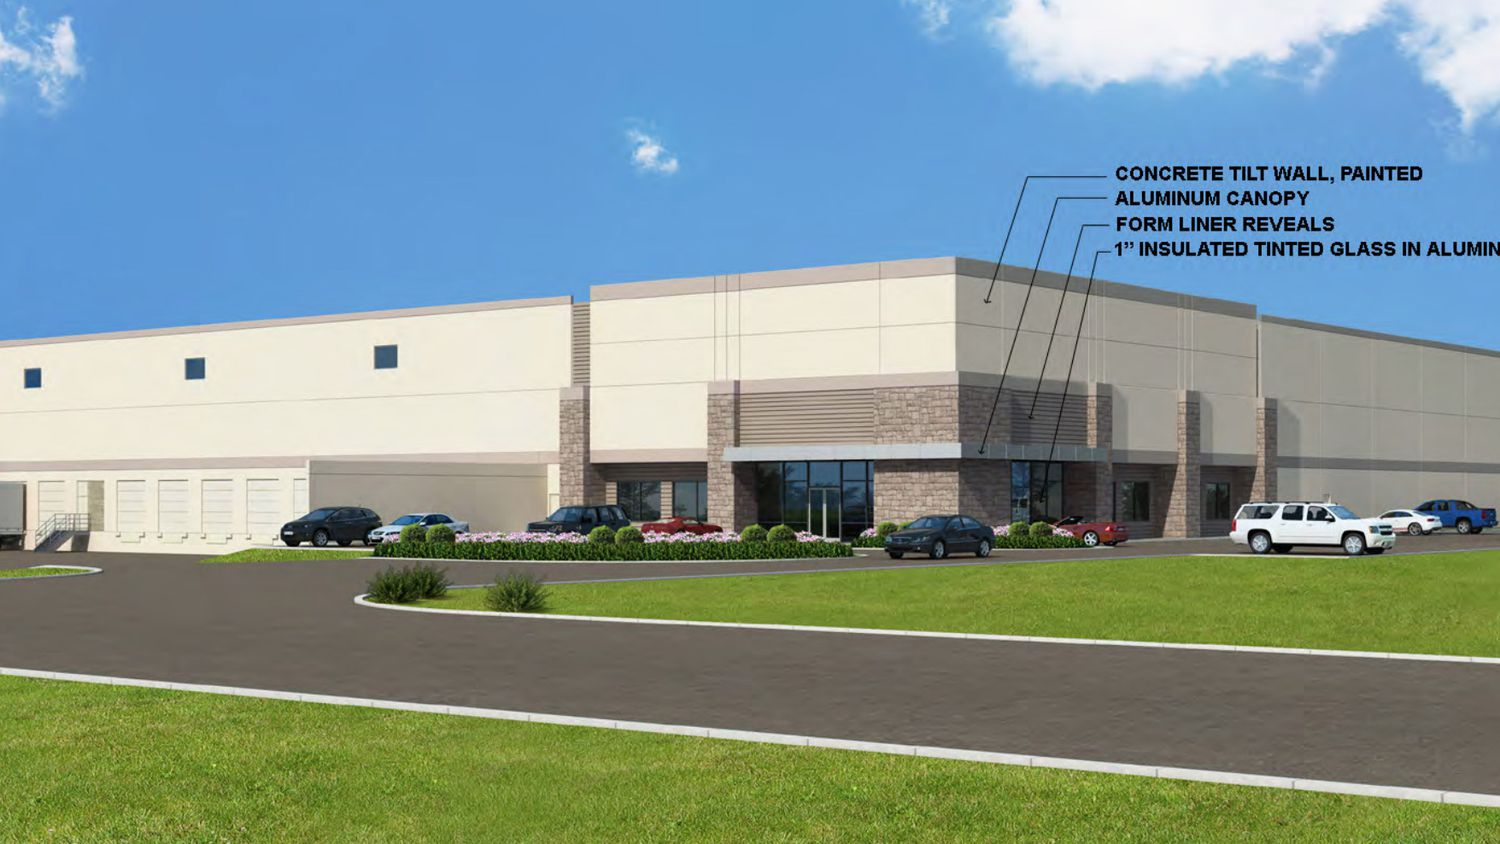 Global firm Seko Logistics is taking space in the DFW Airfield Logistics Center in Euless.